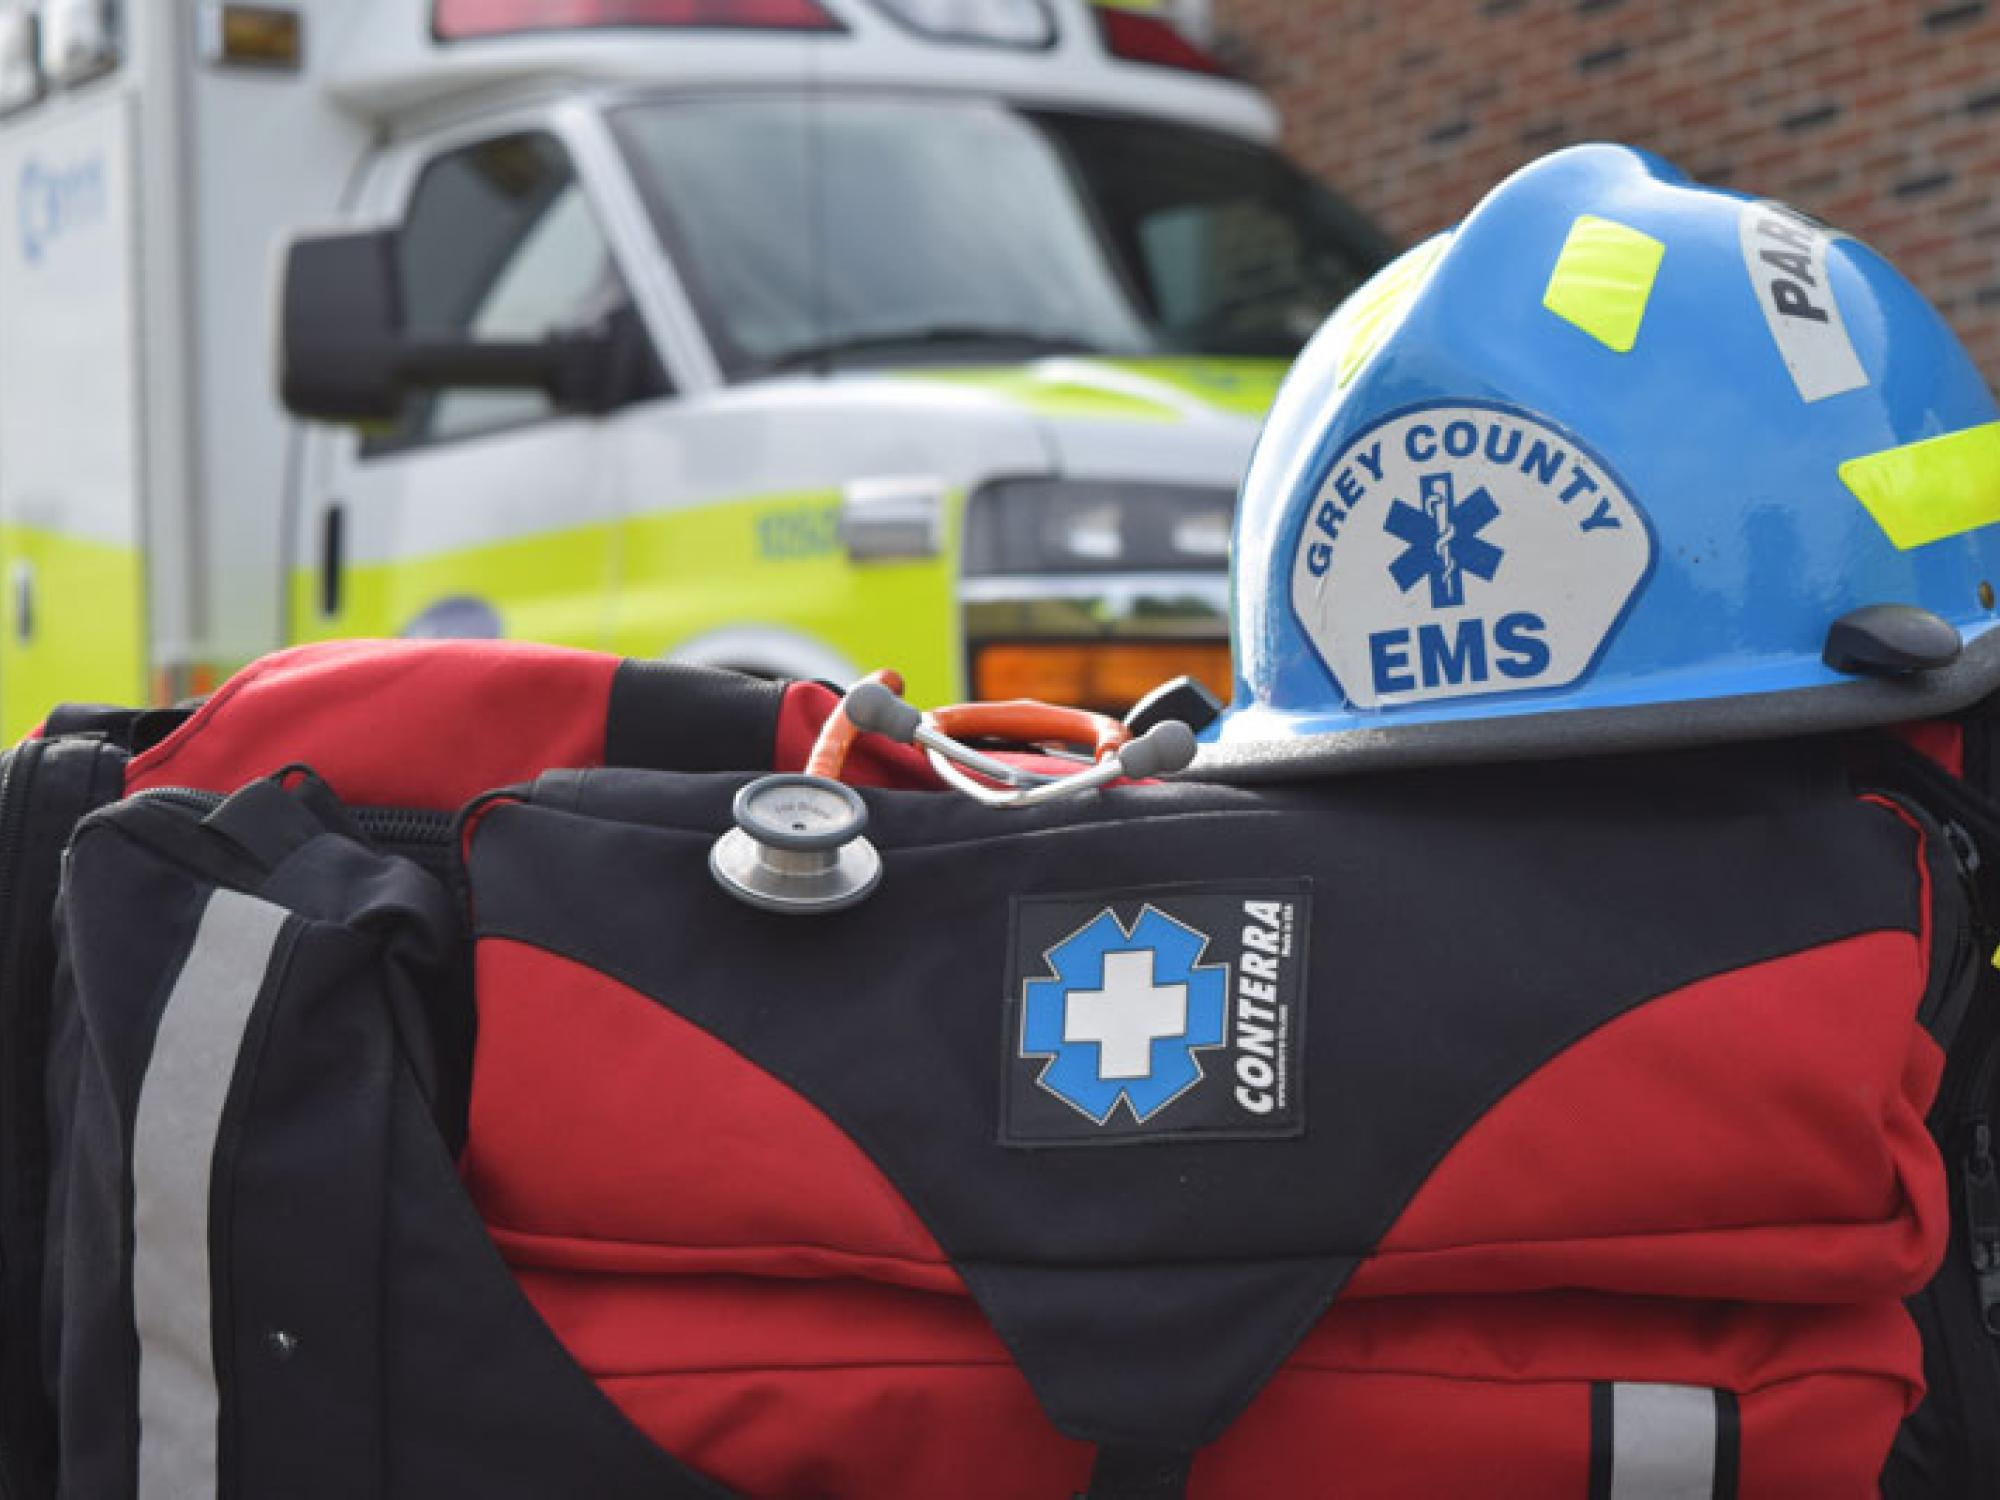 Paramedic equipment in front of an ambulance.